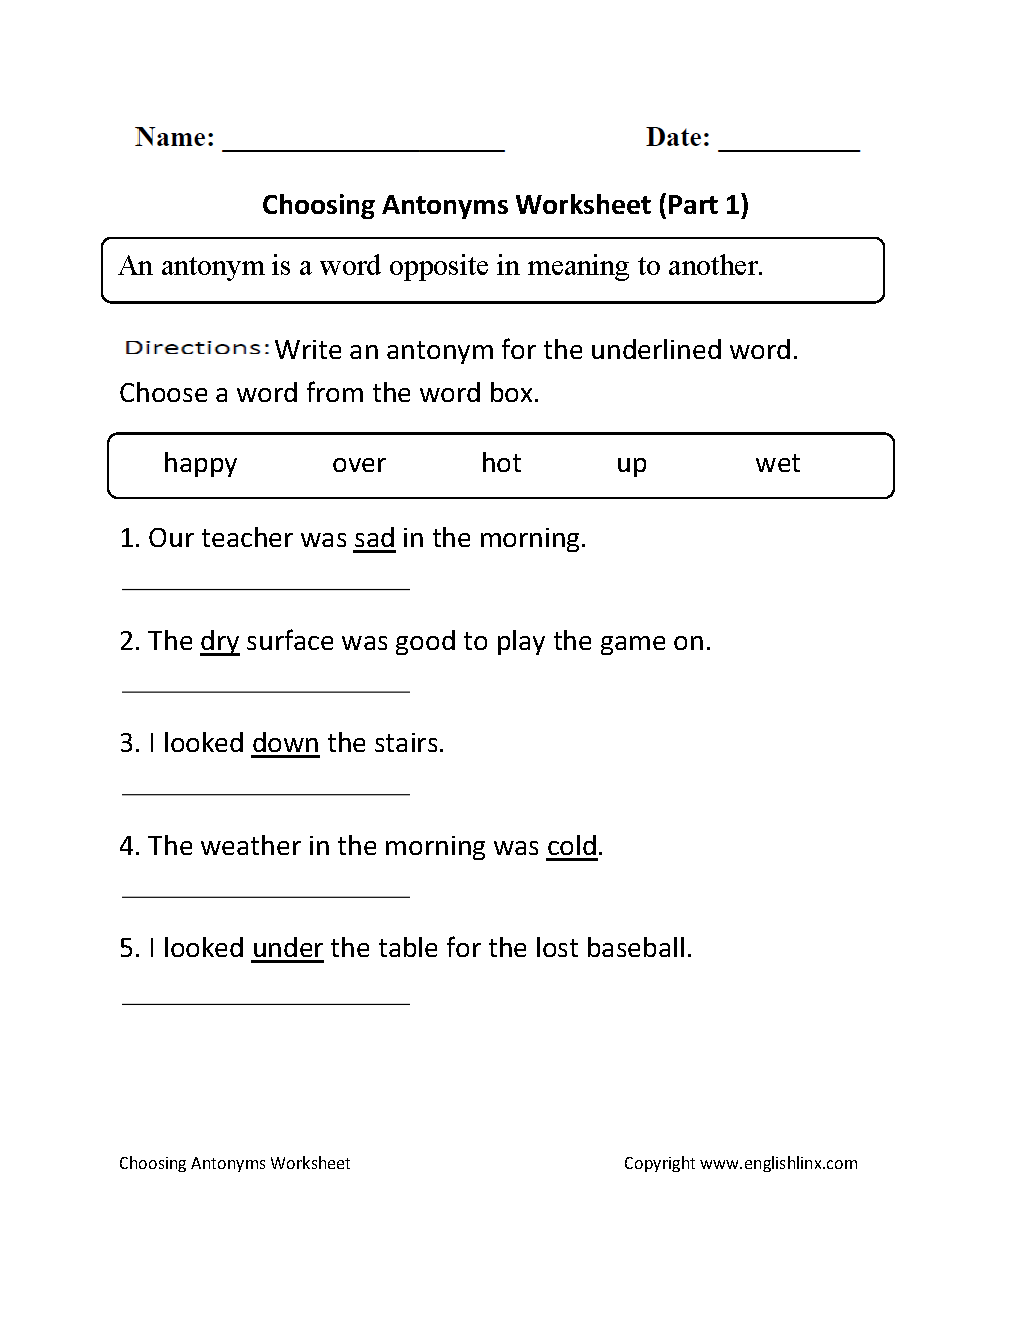 Printables Antonyms Worksheets englishlinx com antonyms worksheets choosing part 1